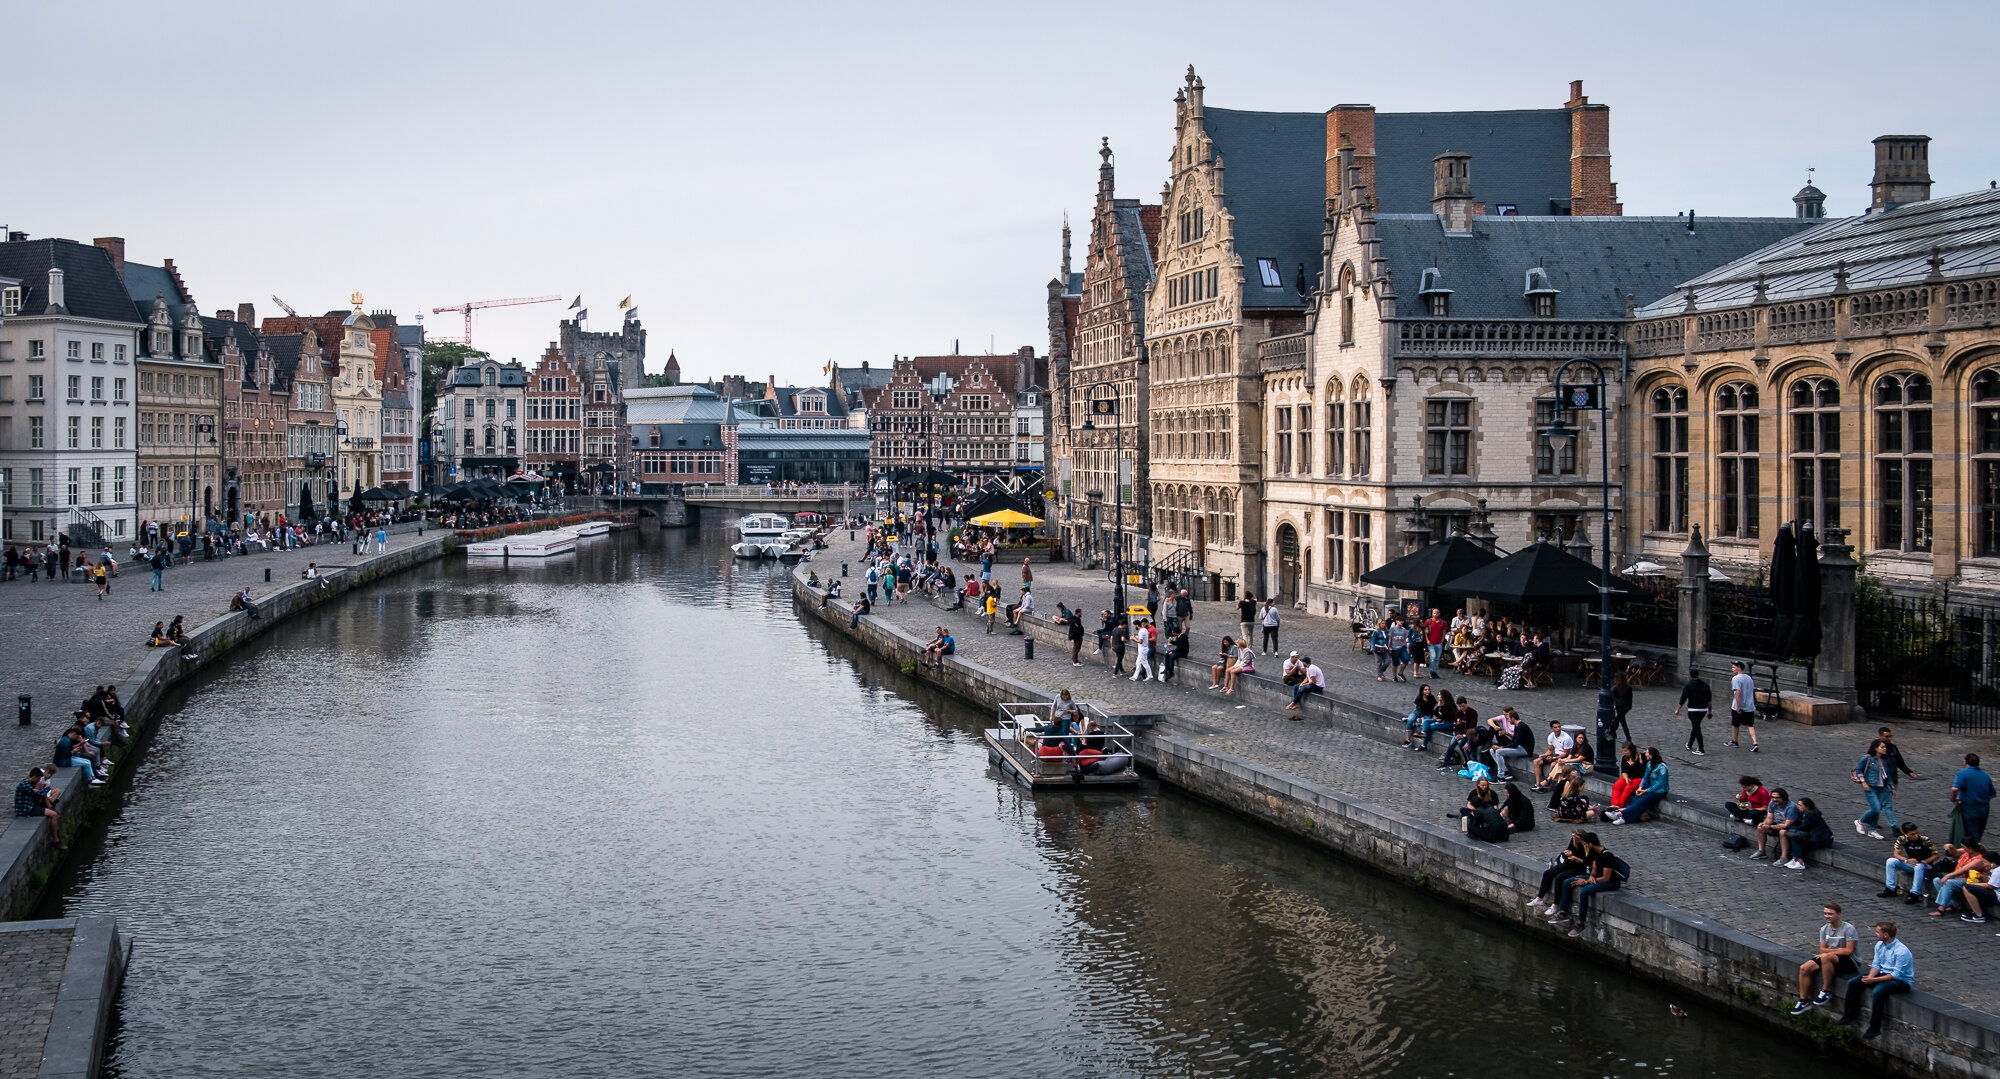 The city of Ghent | Fujifilm XT-30 | XF18-55mm | 18mm | 1/640 Second | f/2.8 | ISO160